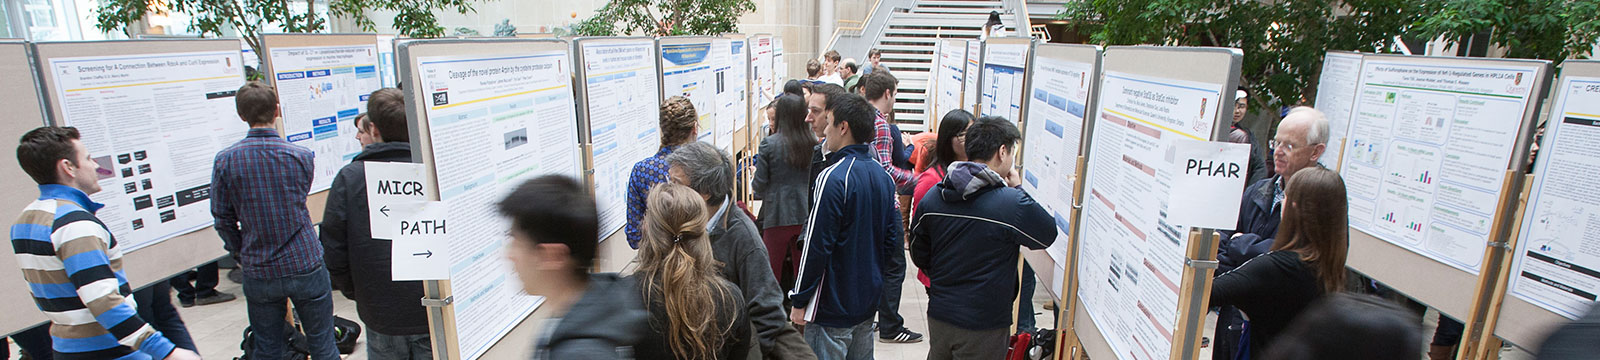 [poster presentation in Biosciences atrium]